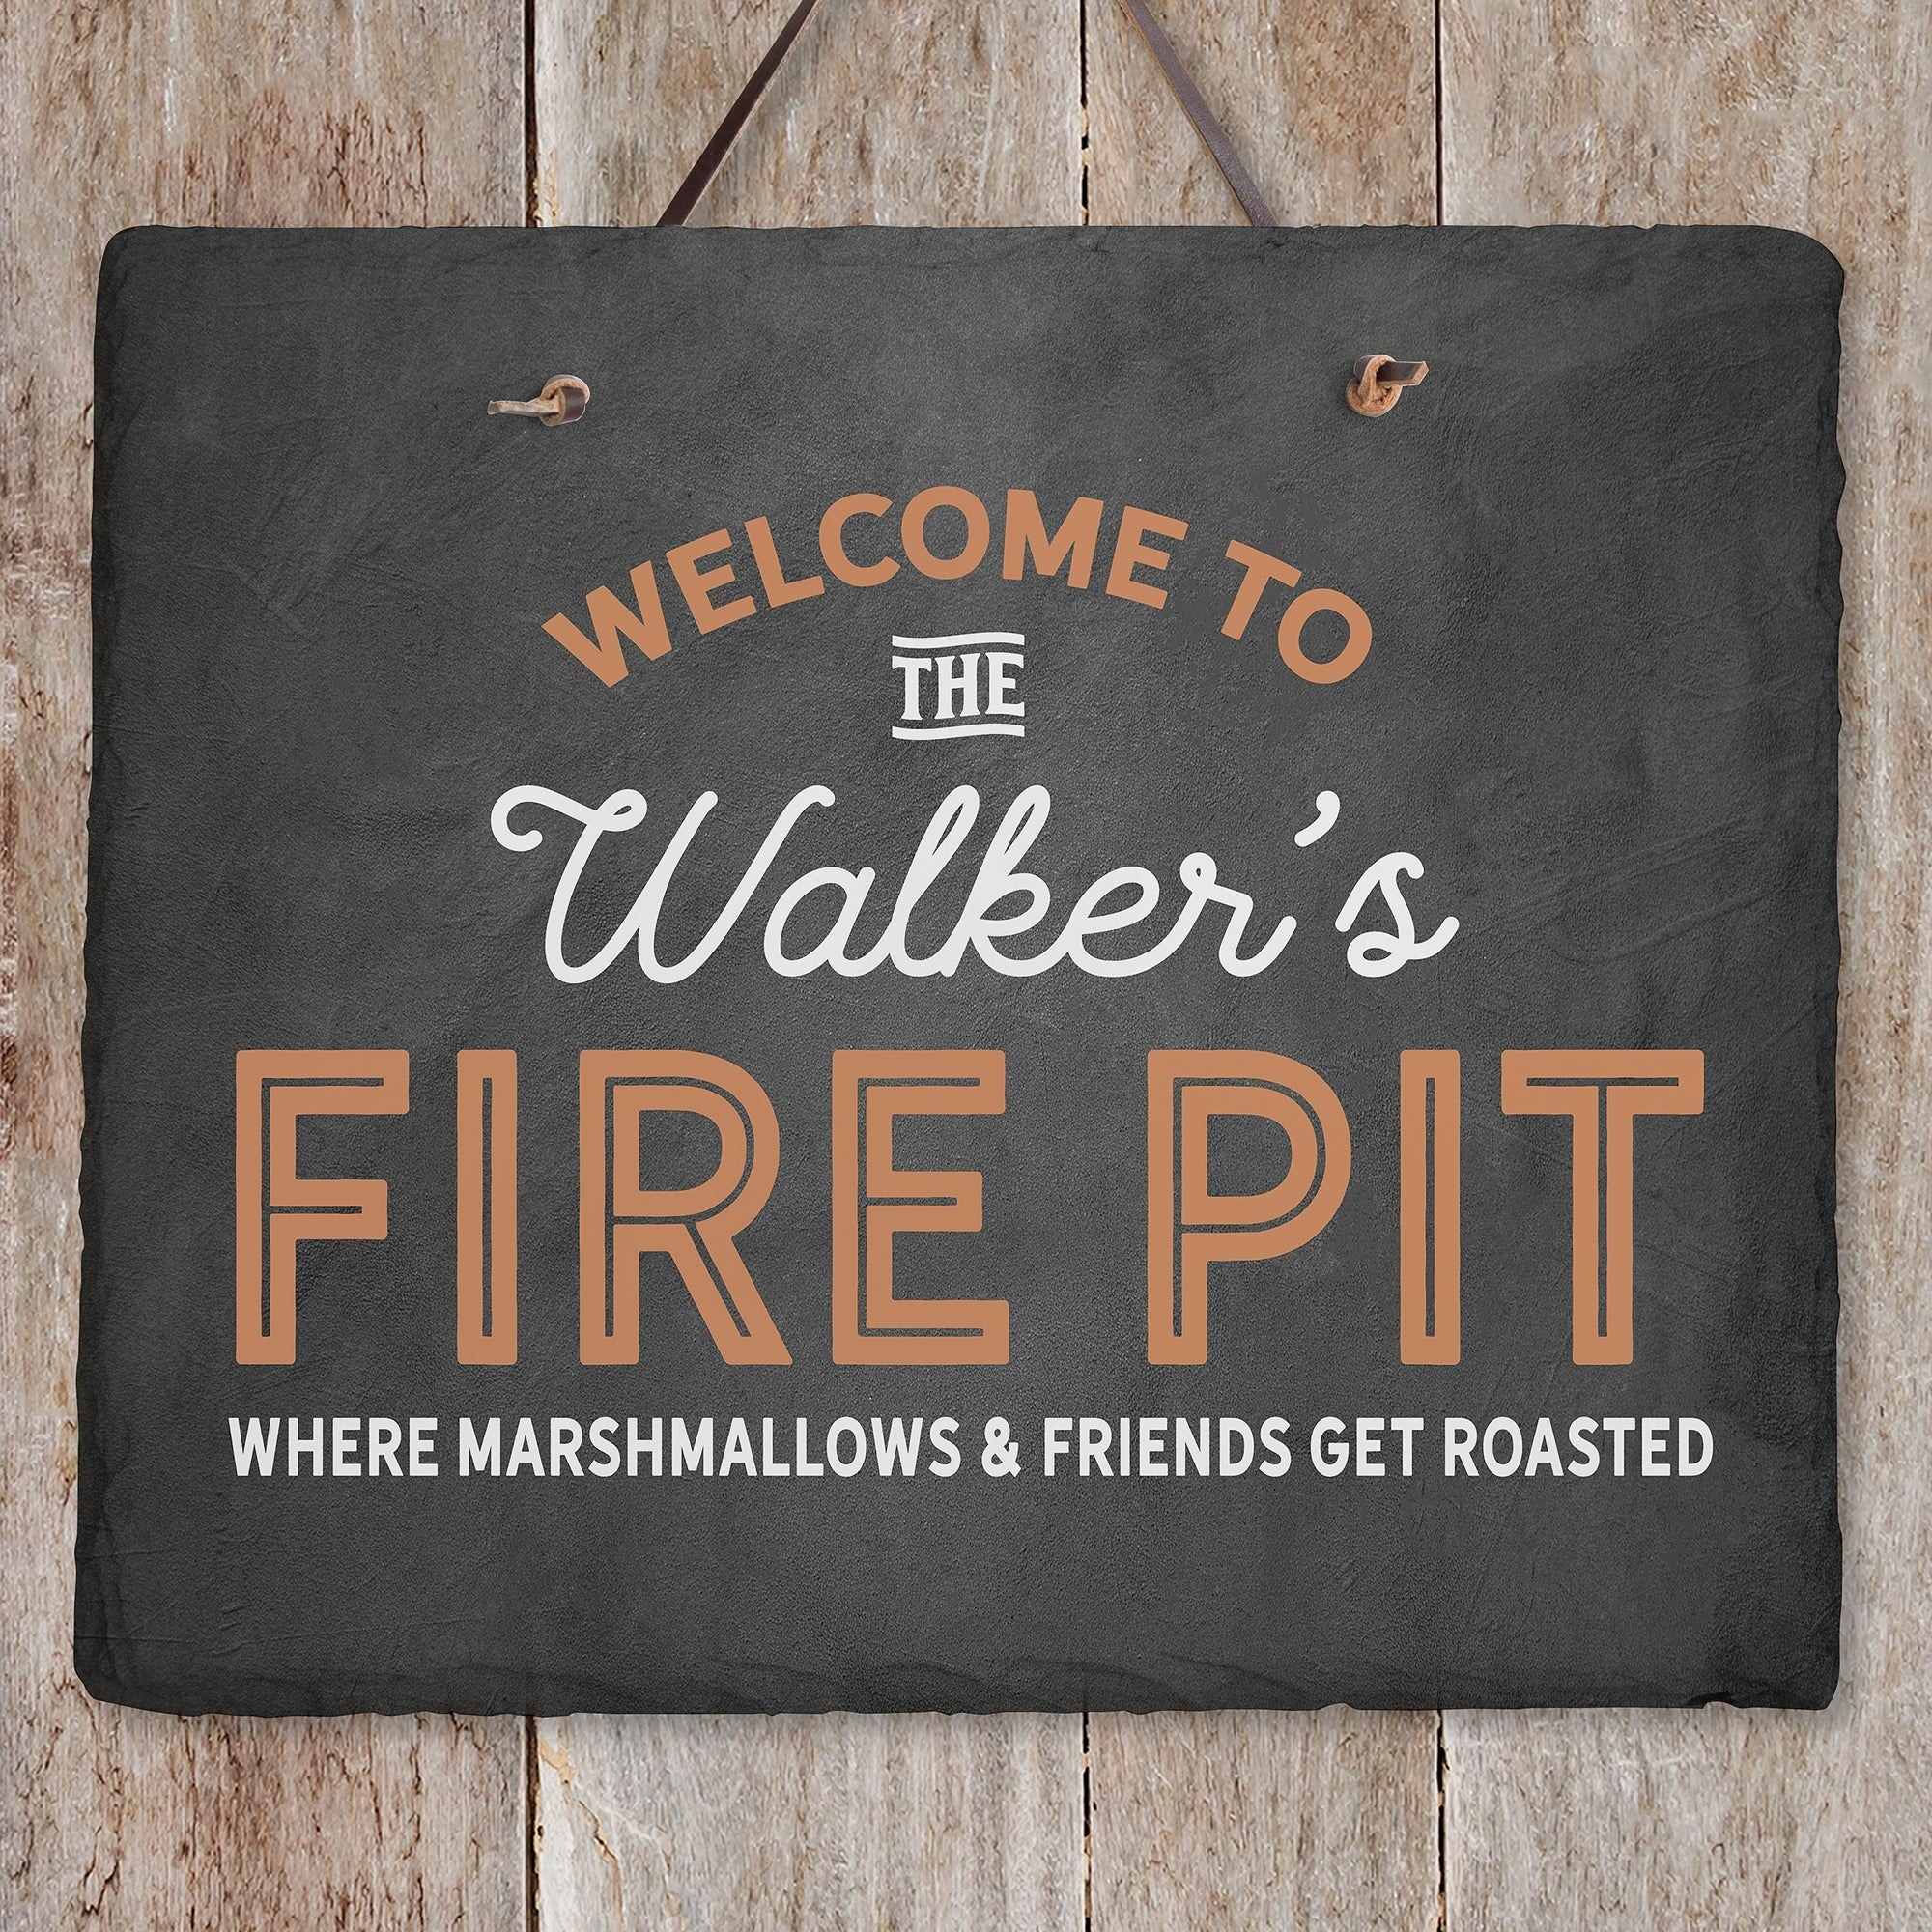 """A sign that says """"WELCOME TO THE Walker's FIRE PIT, WHERE MARSHMALLOWS & FRIENDS GET ROASTED"""""""